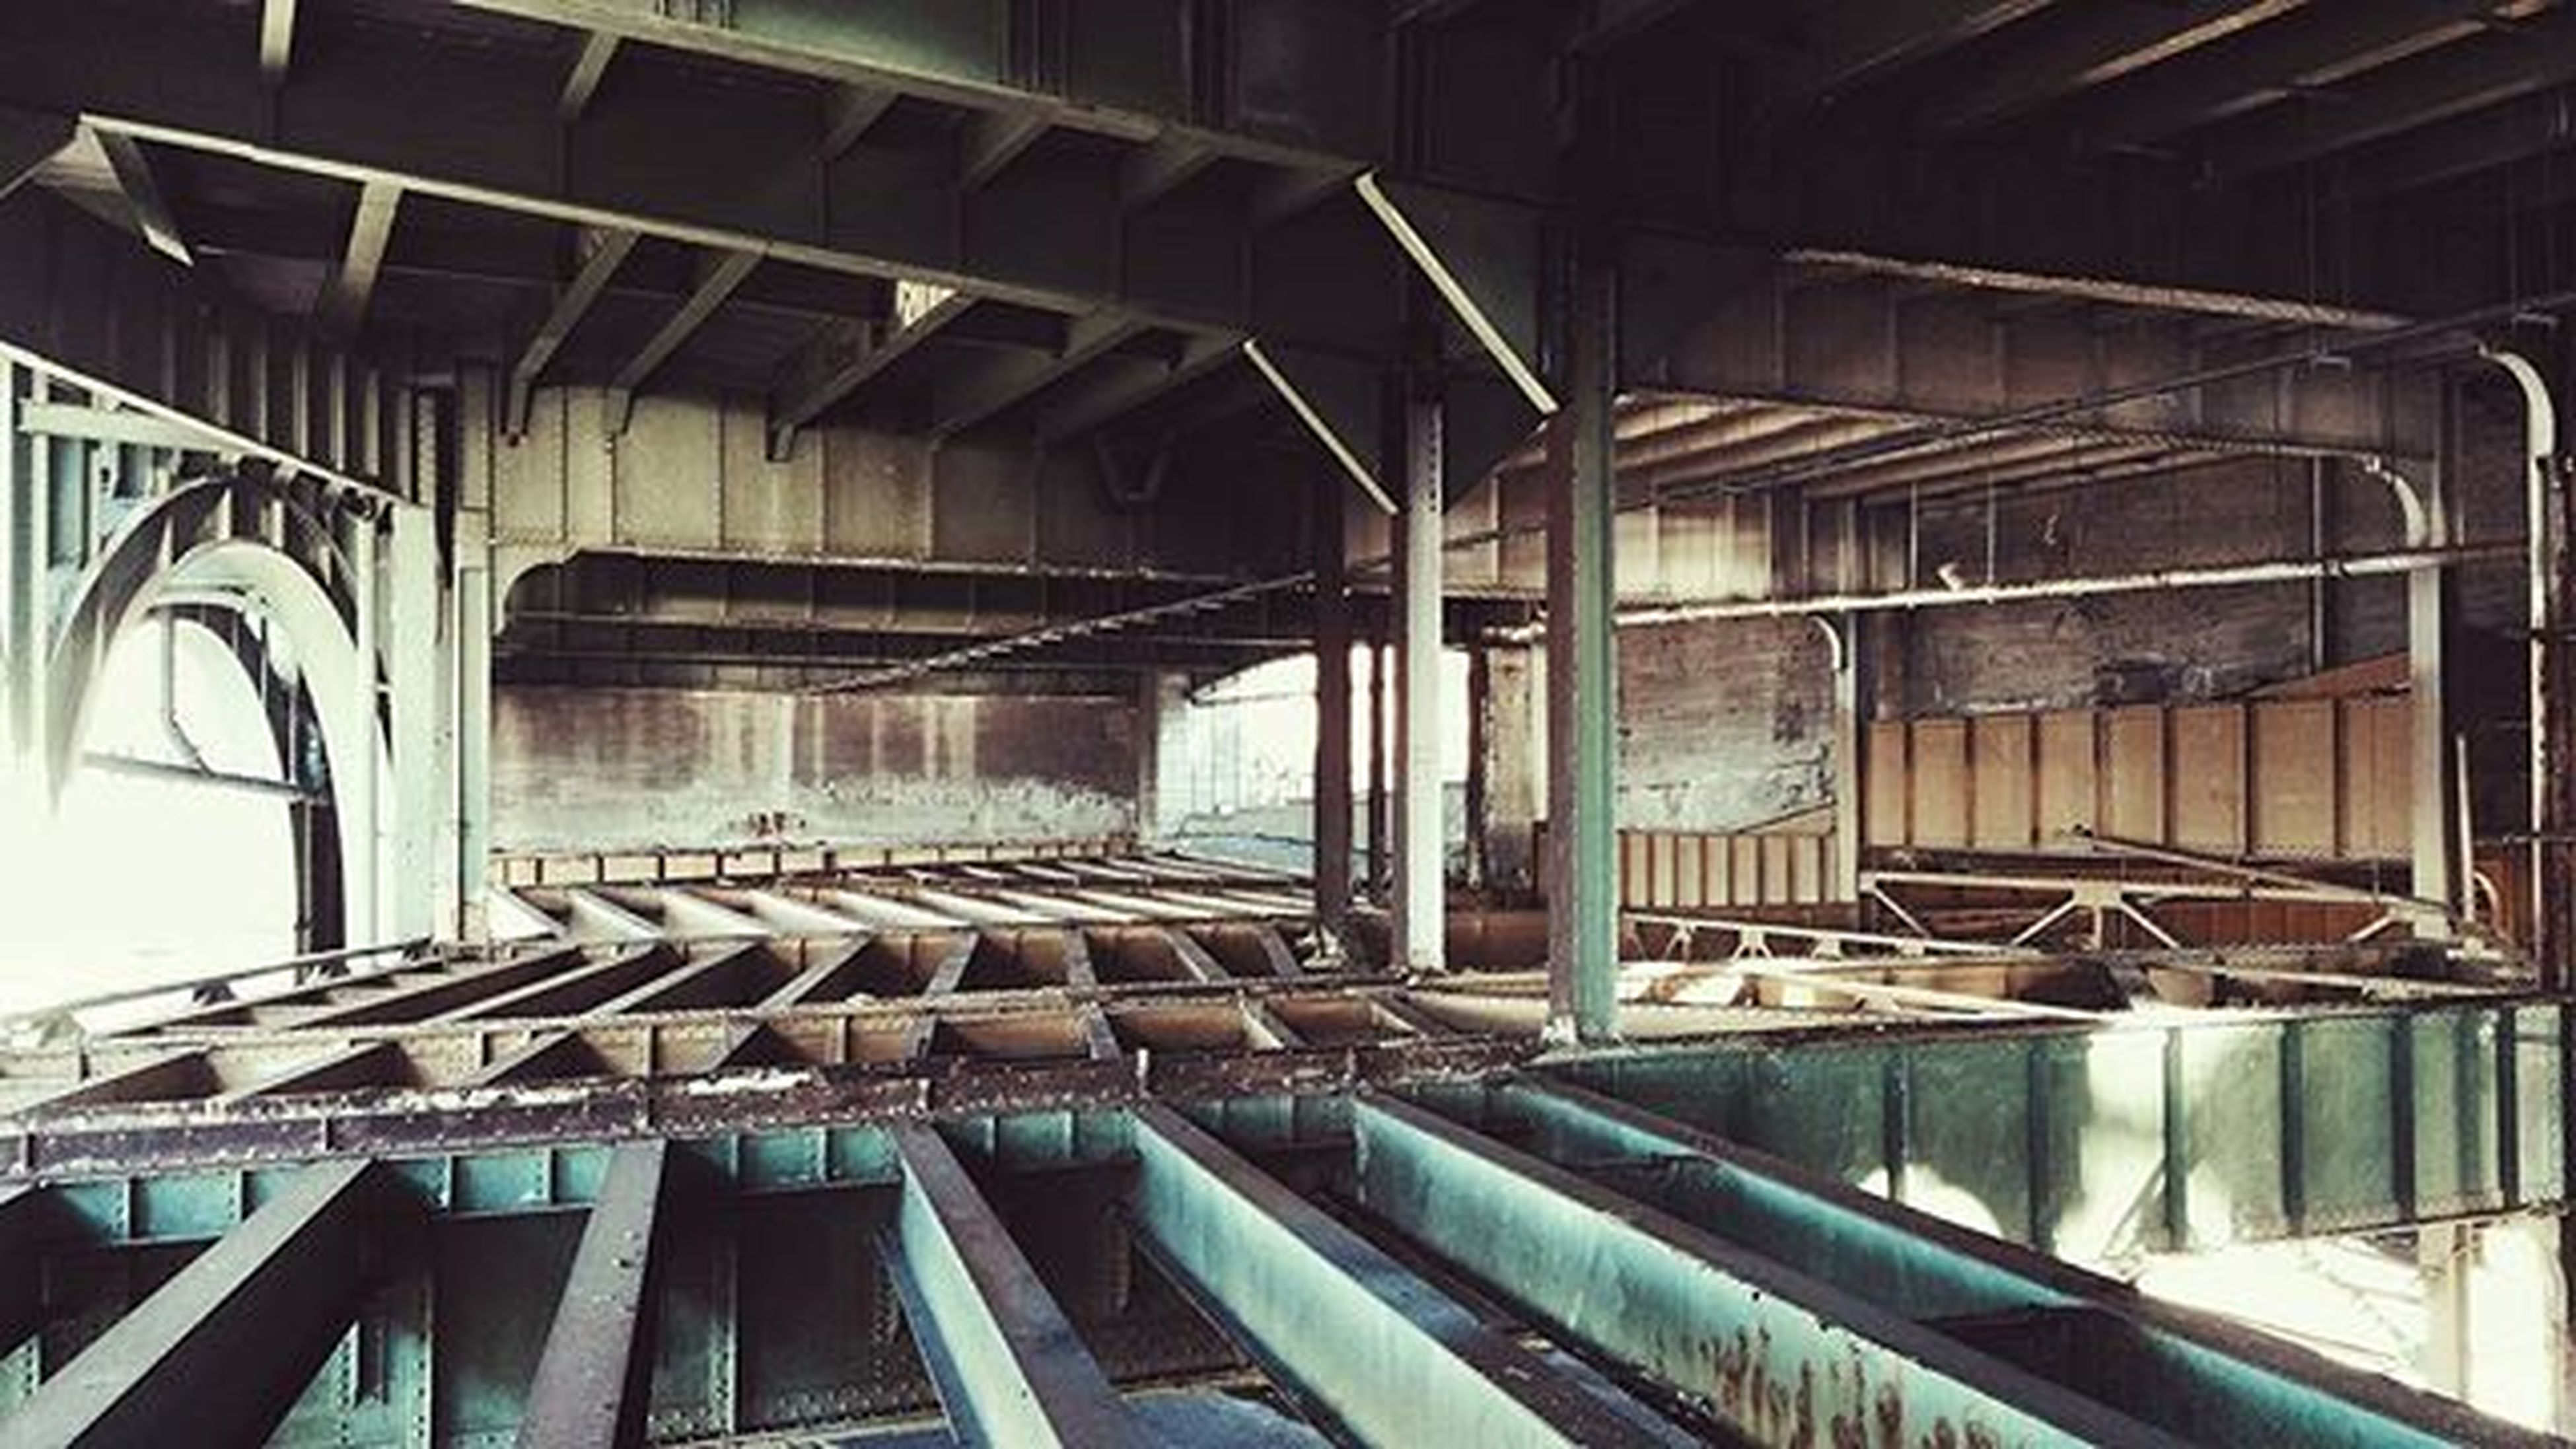 indoors, built structure, architecture, steps, staircase, railing, steps and staircases, wood - material, abandoned, absence, empty, old, interior, stairs, no people, day, window, building, ceiling, low angle view